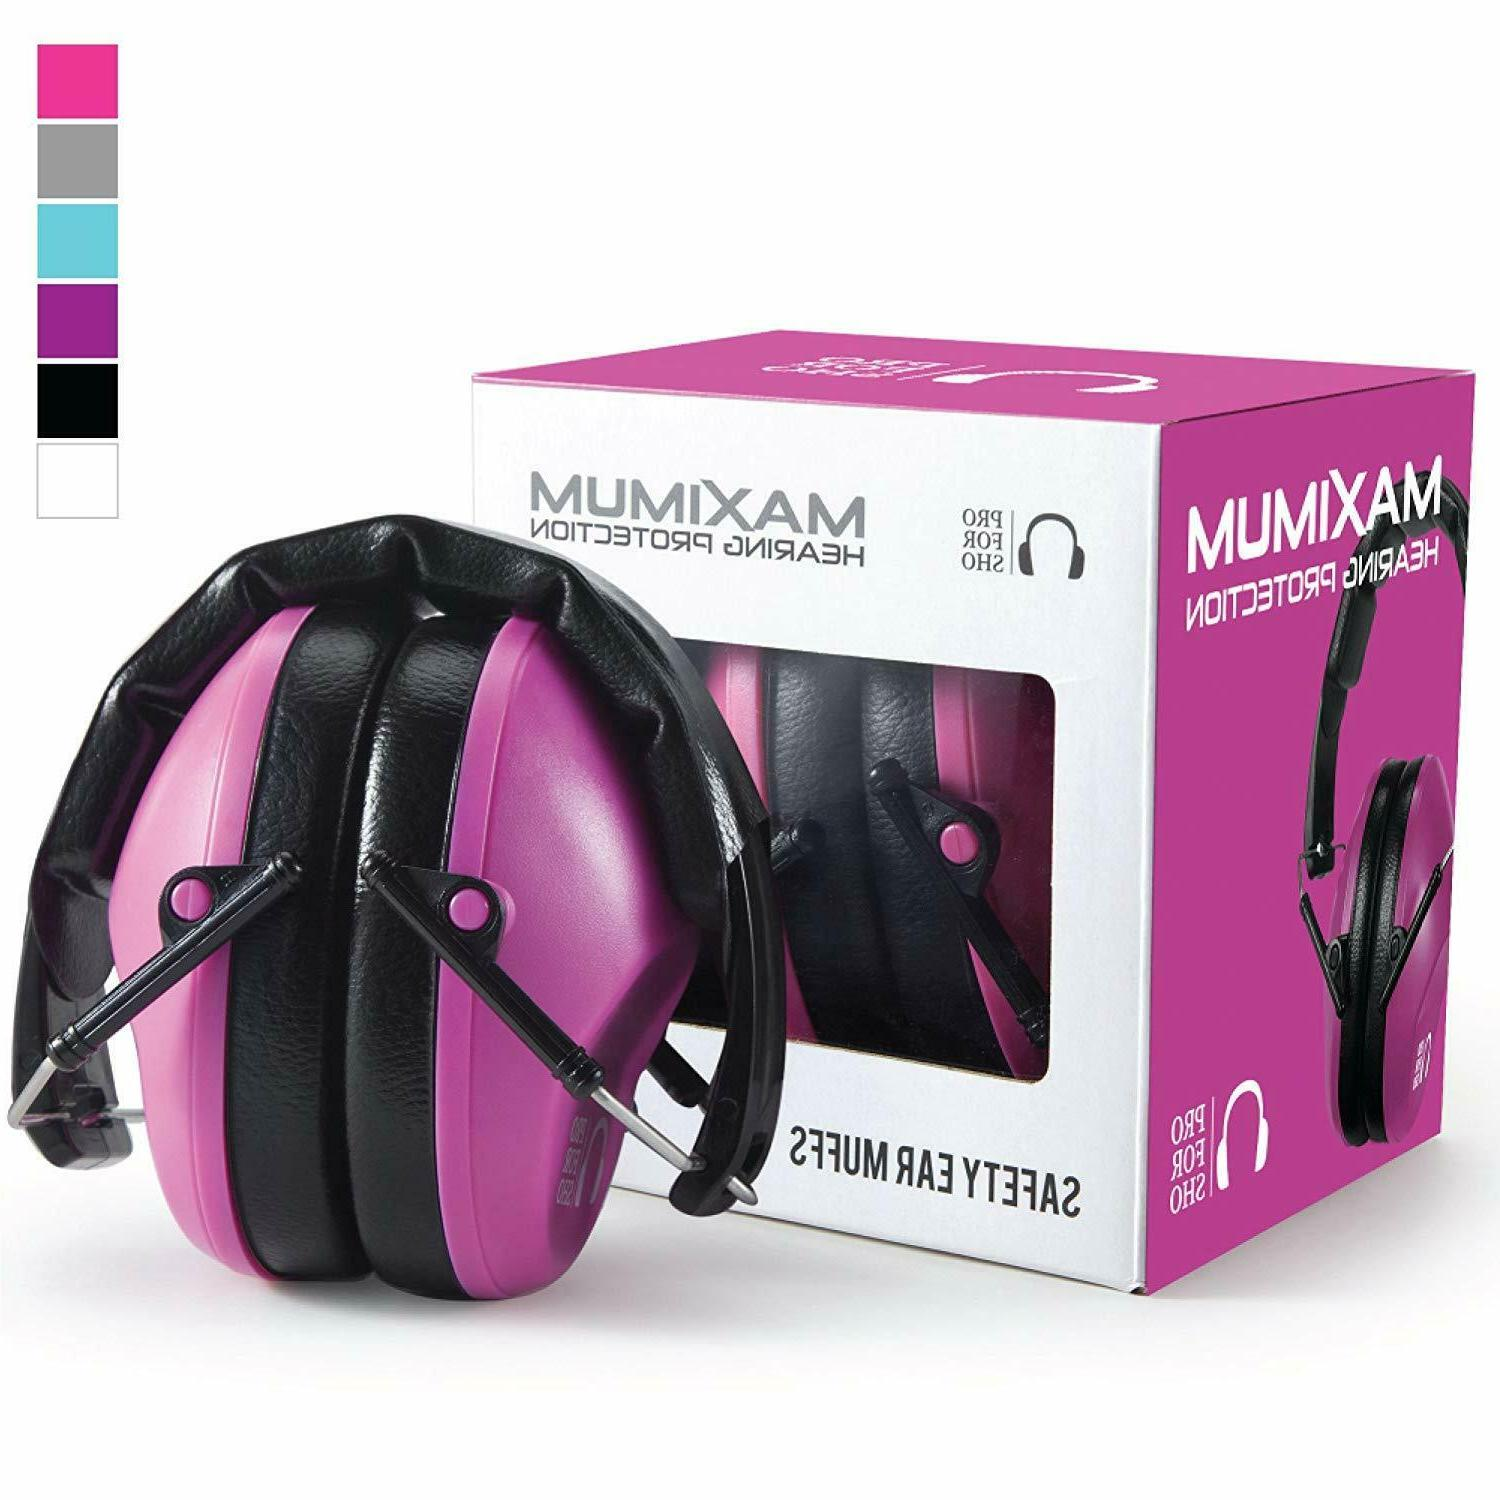 34db shooting ear protection special designed ear